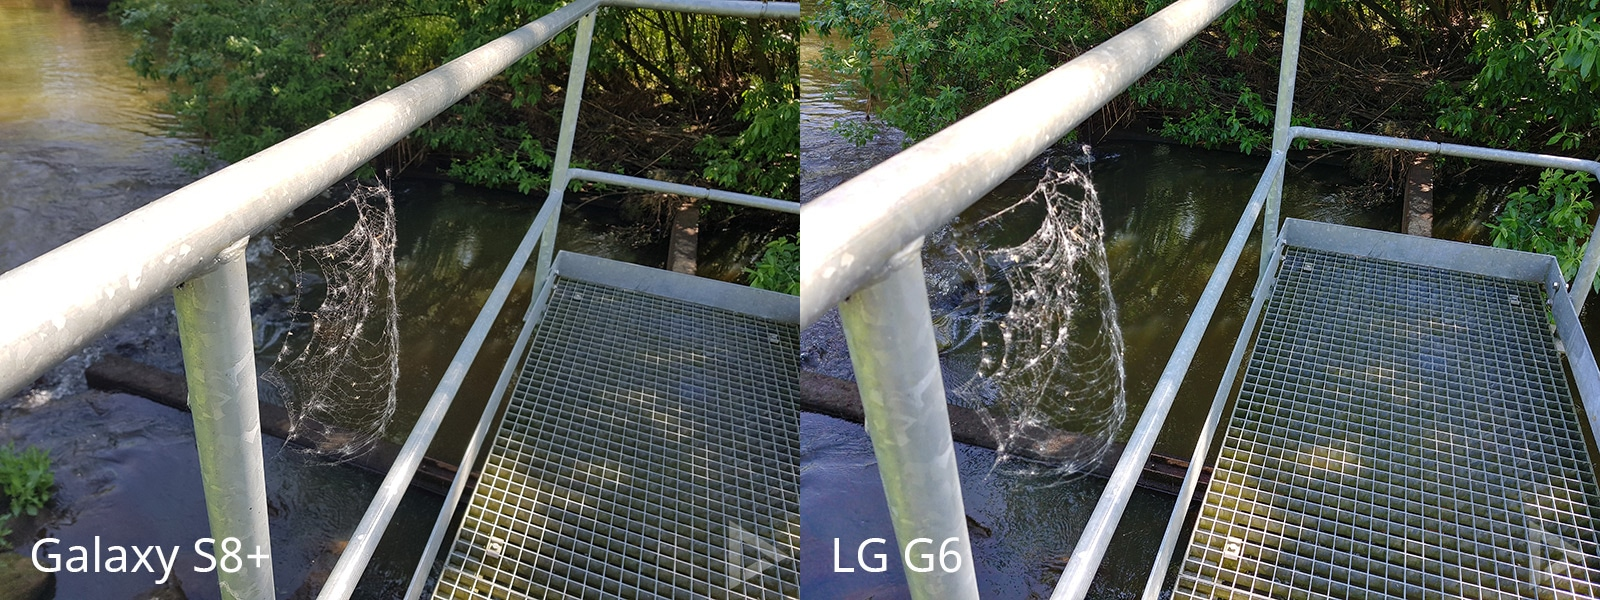 camera LG G6 vs Galaxy S8